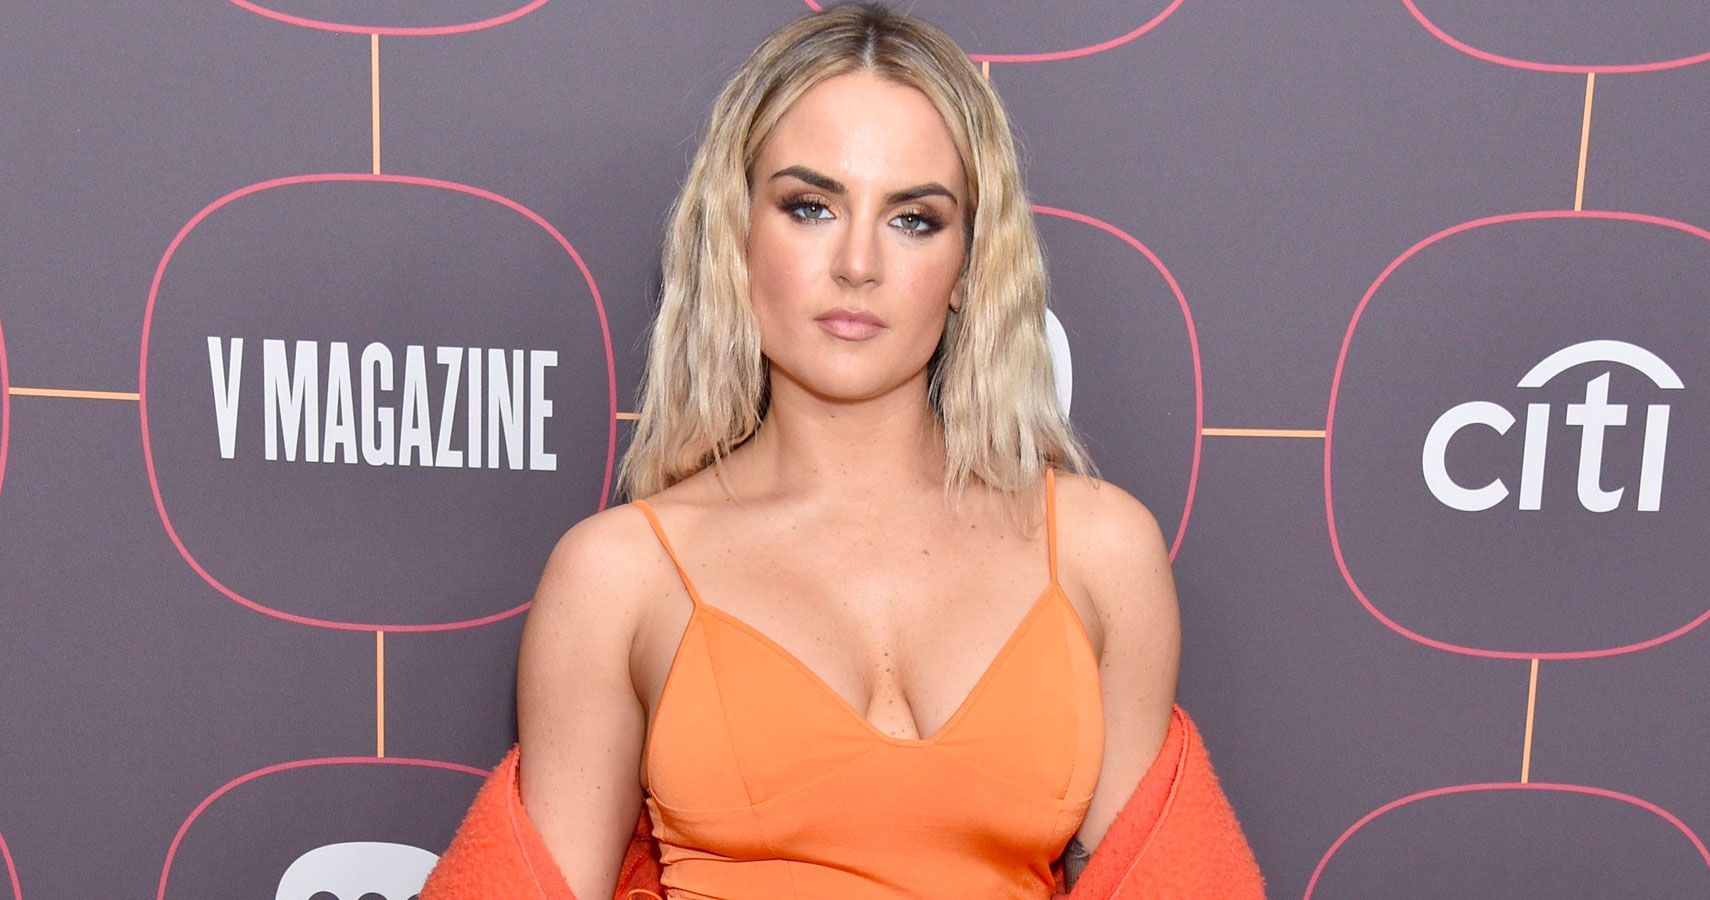 An Inside Look At How JoJo Got Her Big Break And Where She Is Now